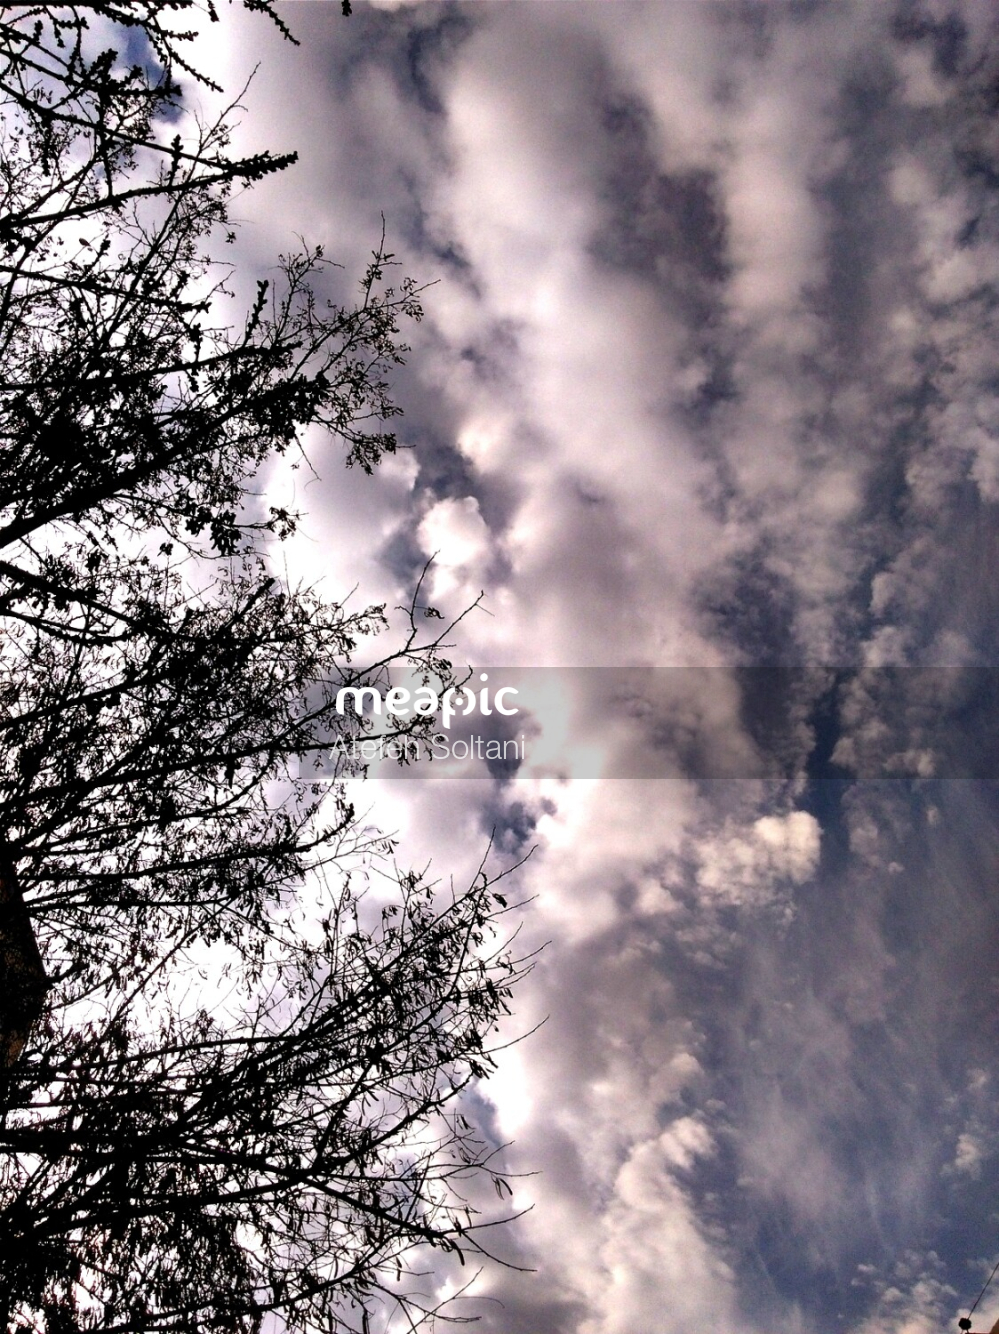 Tree With Smoke Coming Out Of It Stock Photo · Meapic